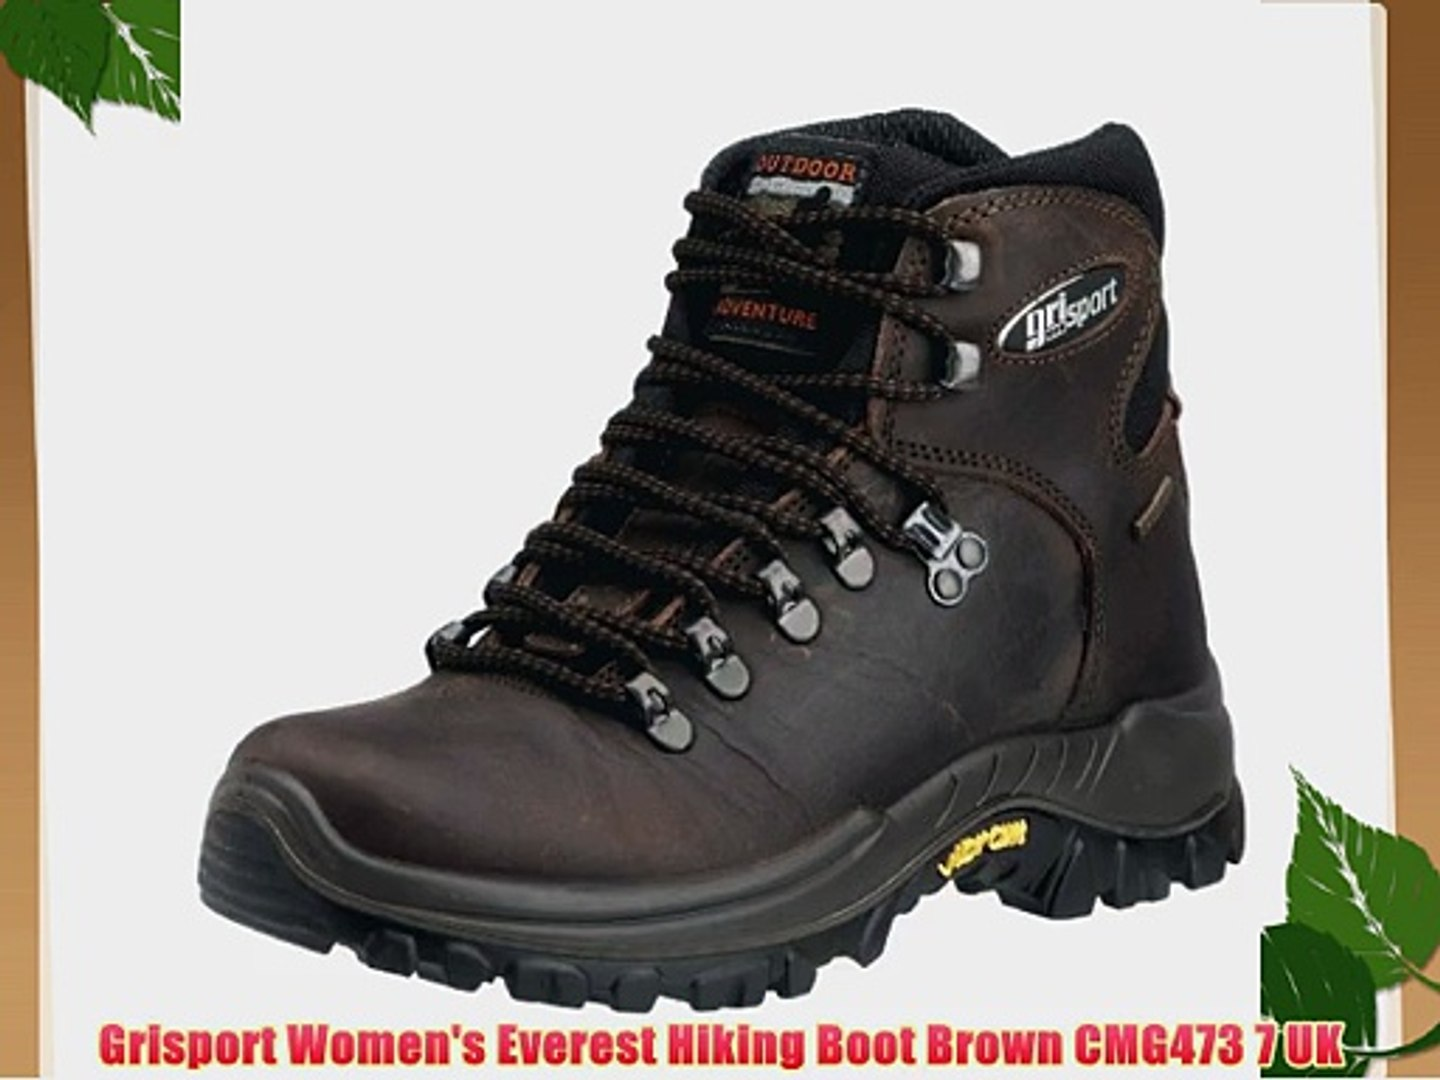 630398c8c20 Grisport Women's Everest Hiking Boot Brown CMG473 7 UK - video dailymotion